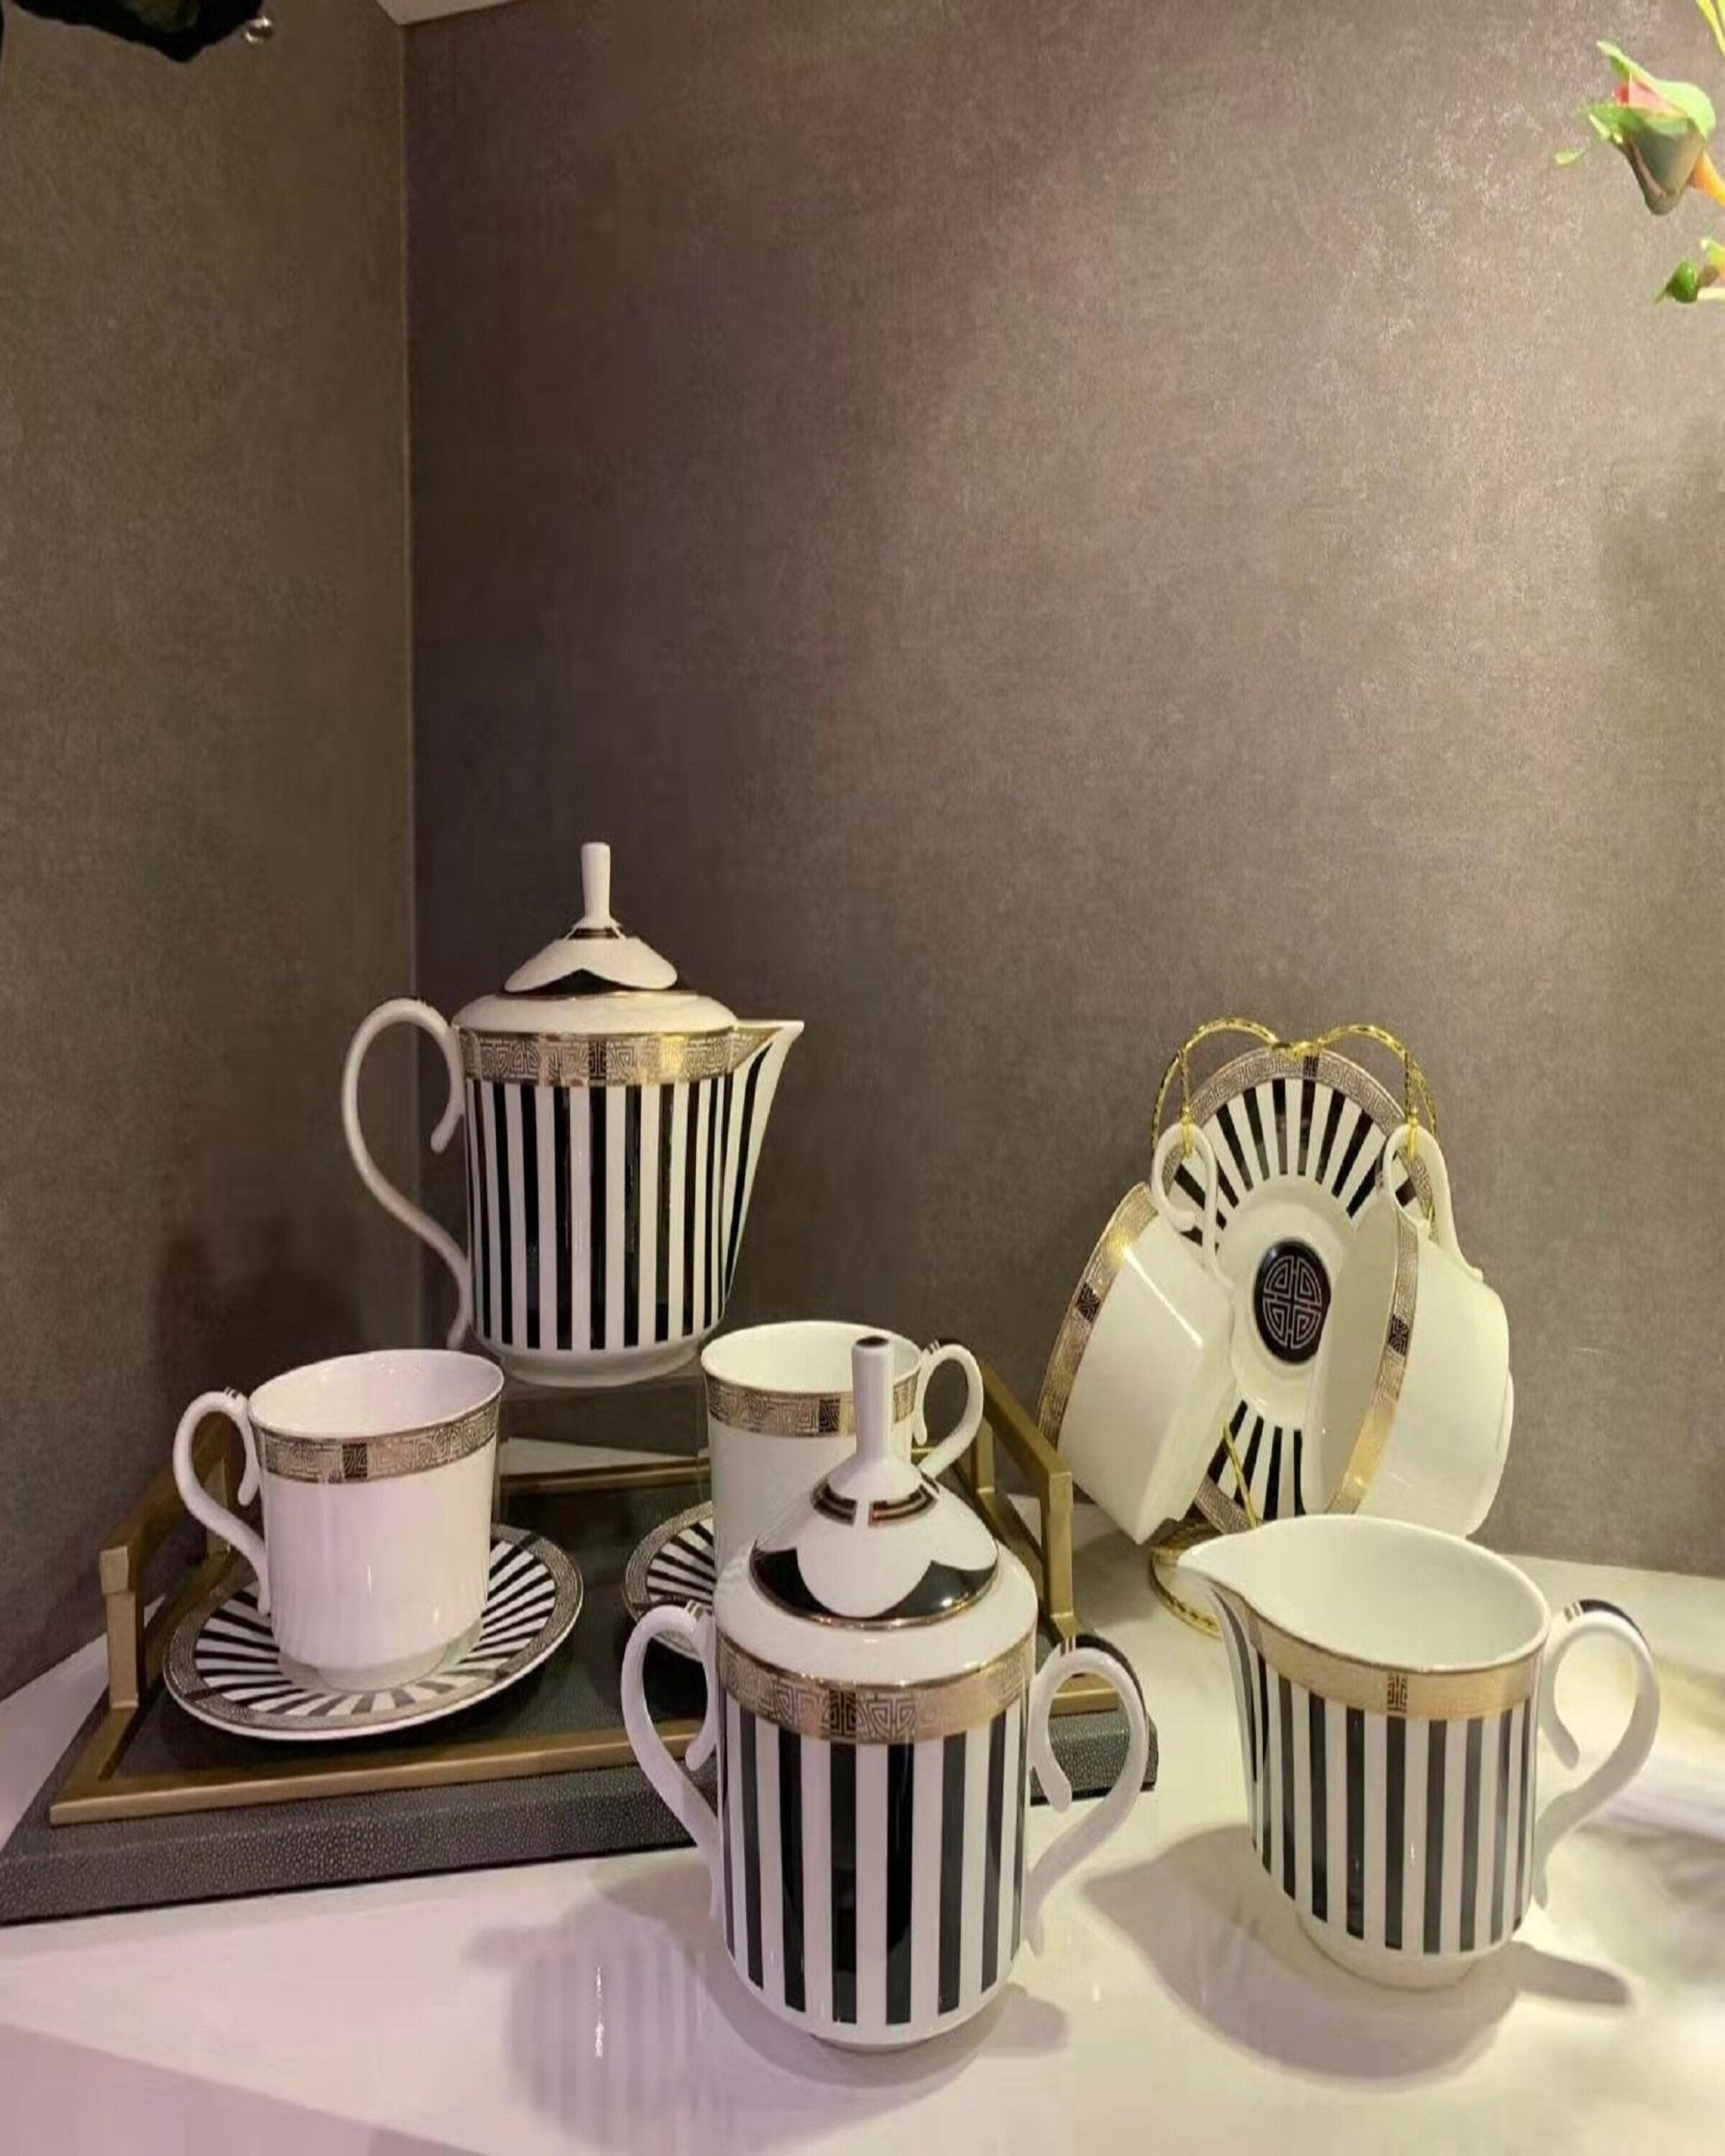 NIKON TEA SET ANGIE HOMES